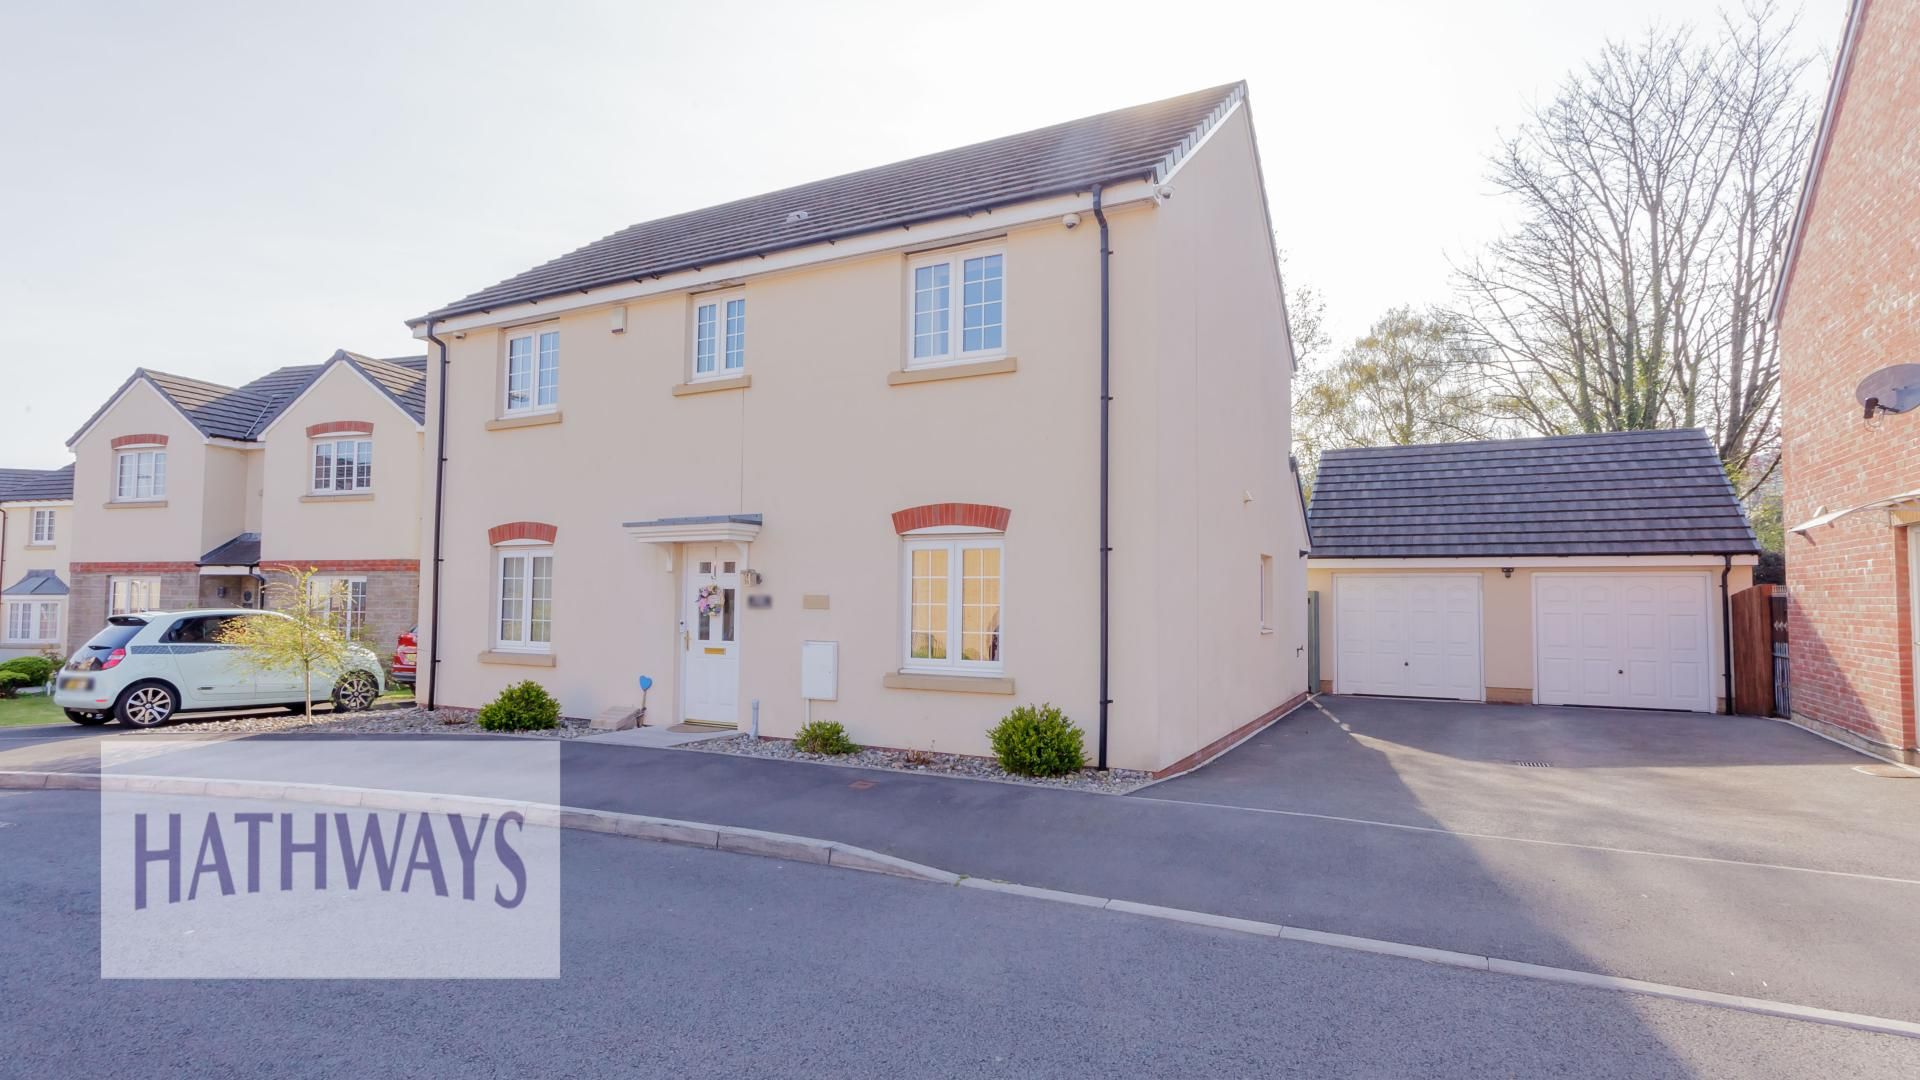 4 bed house for sale in Parc Panteg, NP4